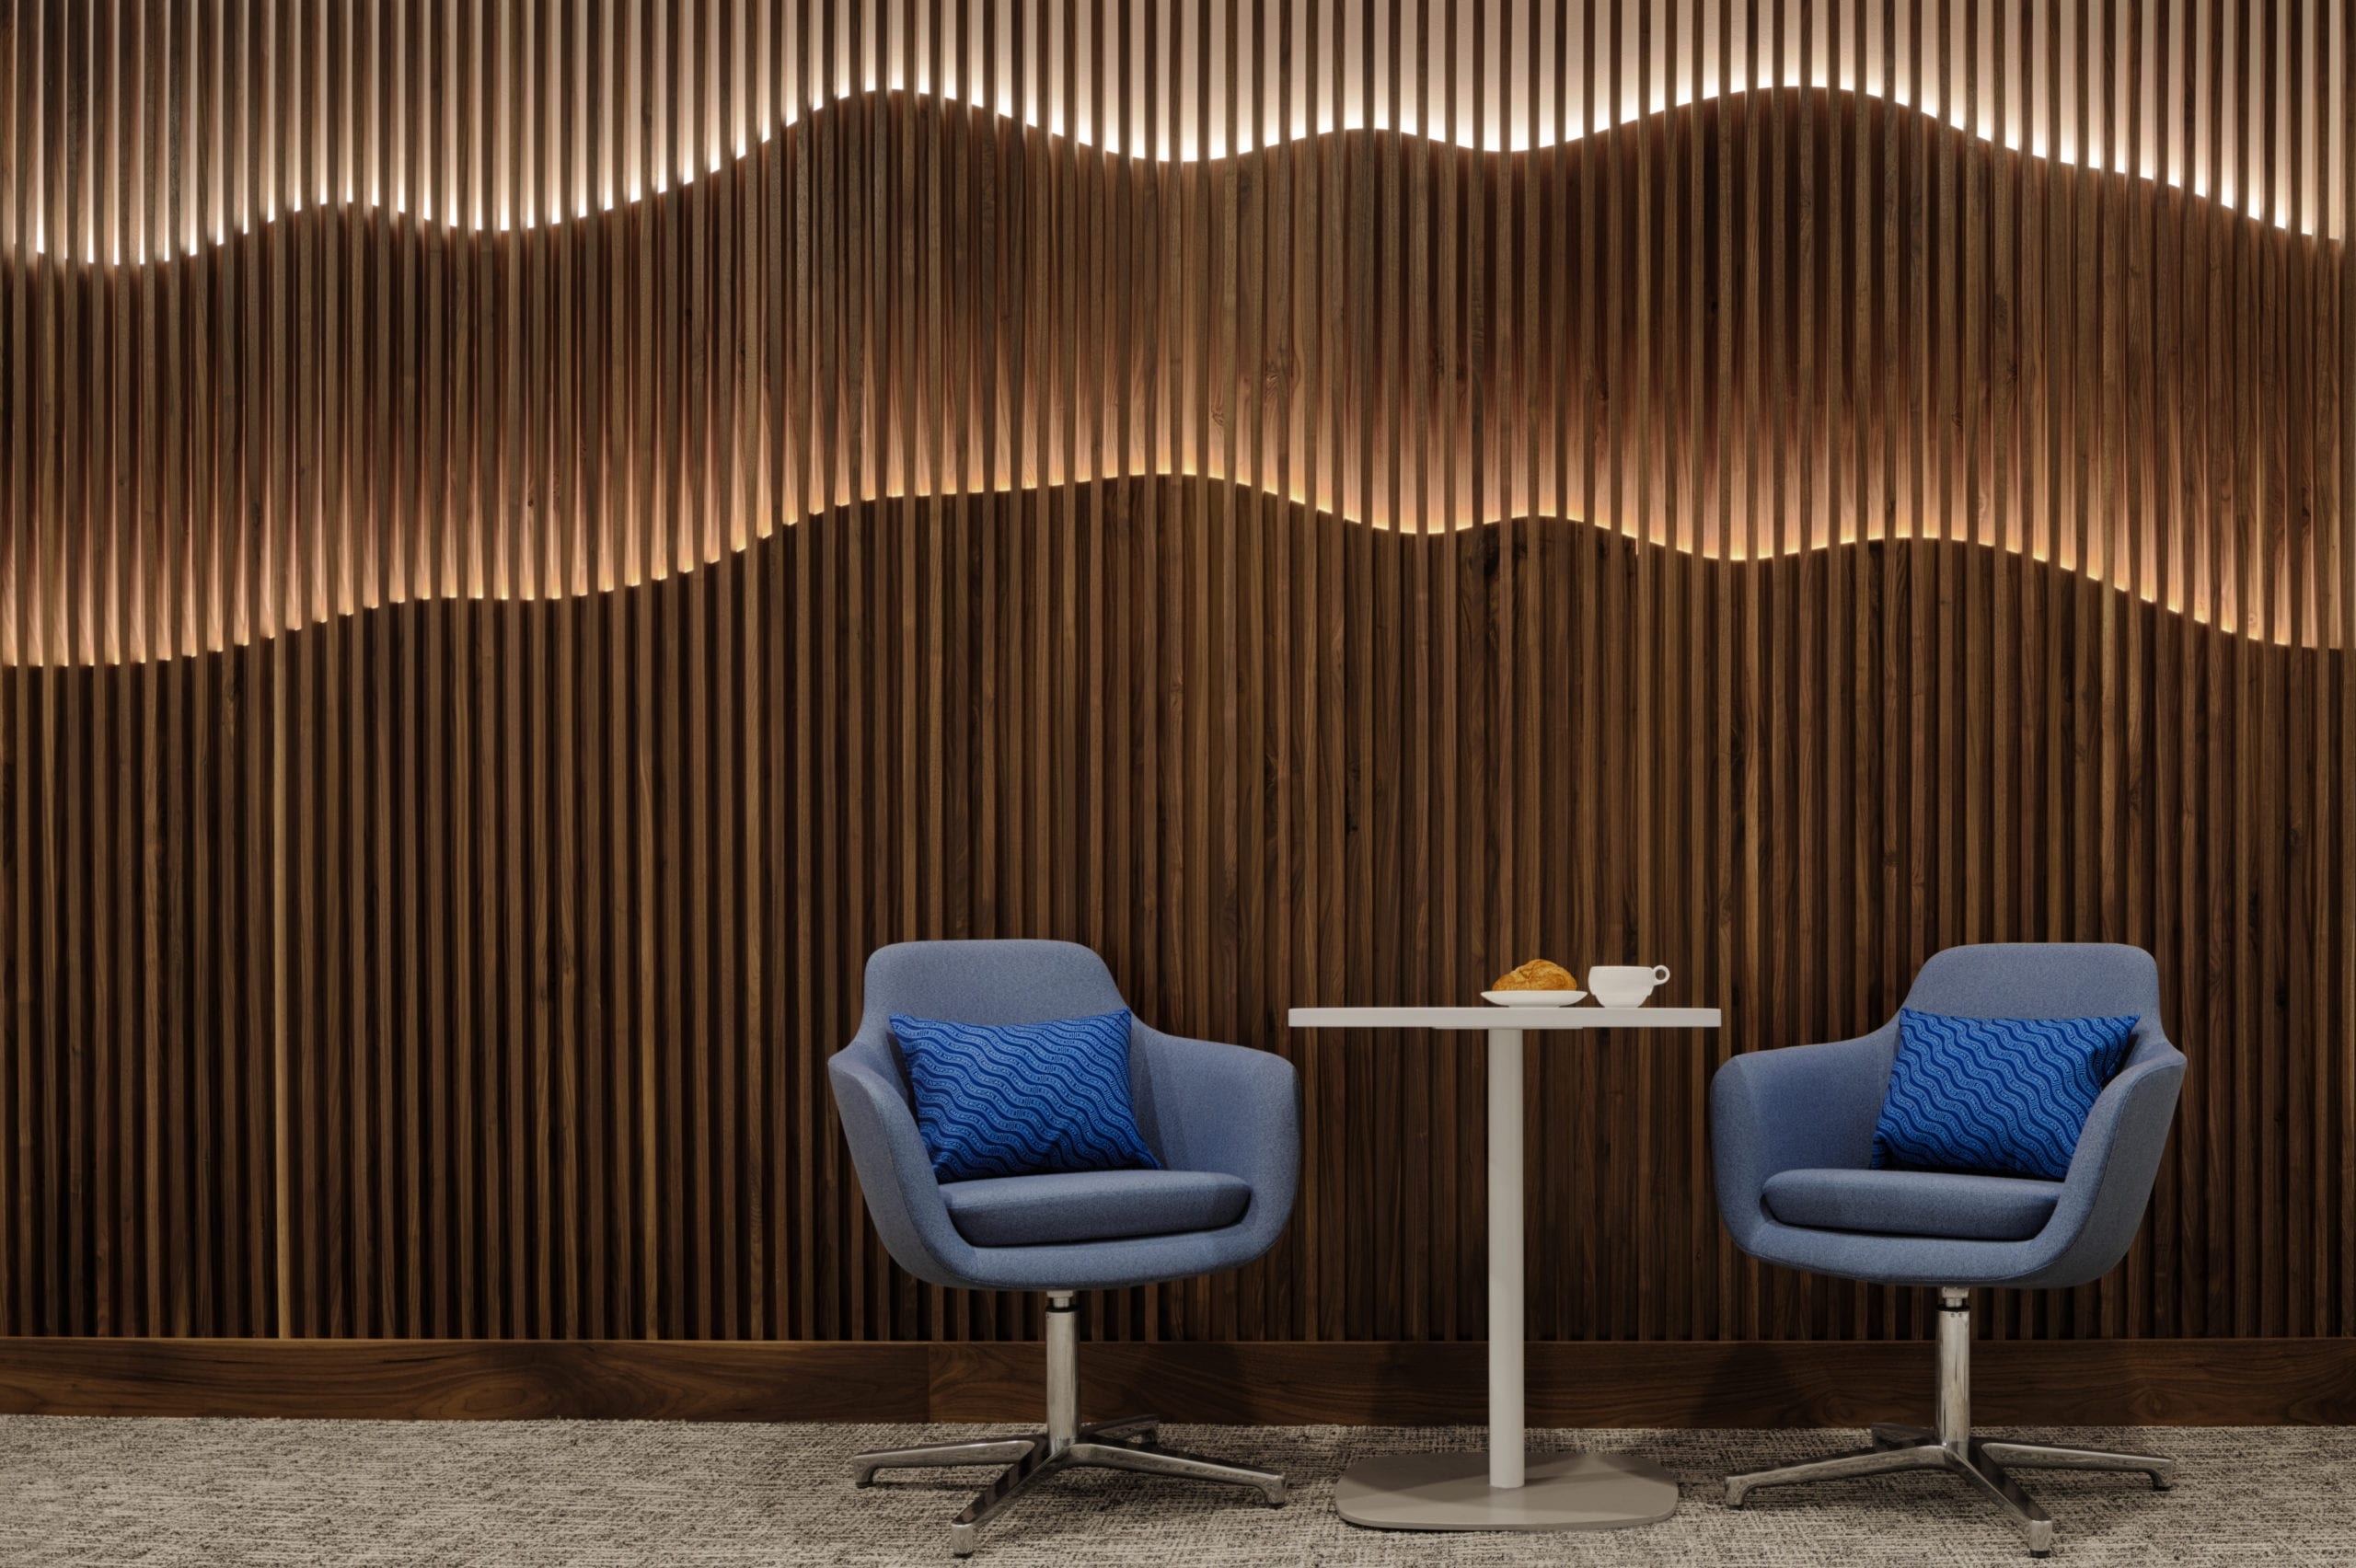 Hollywood Hill seating area at the Centurion Lounge at LAX scaled